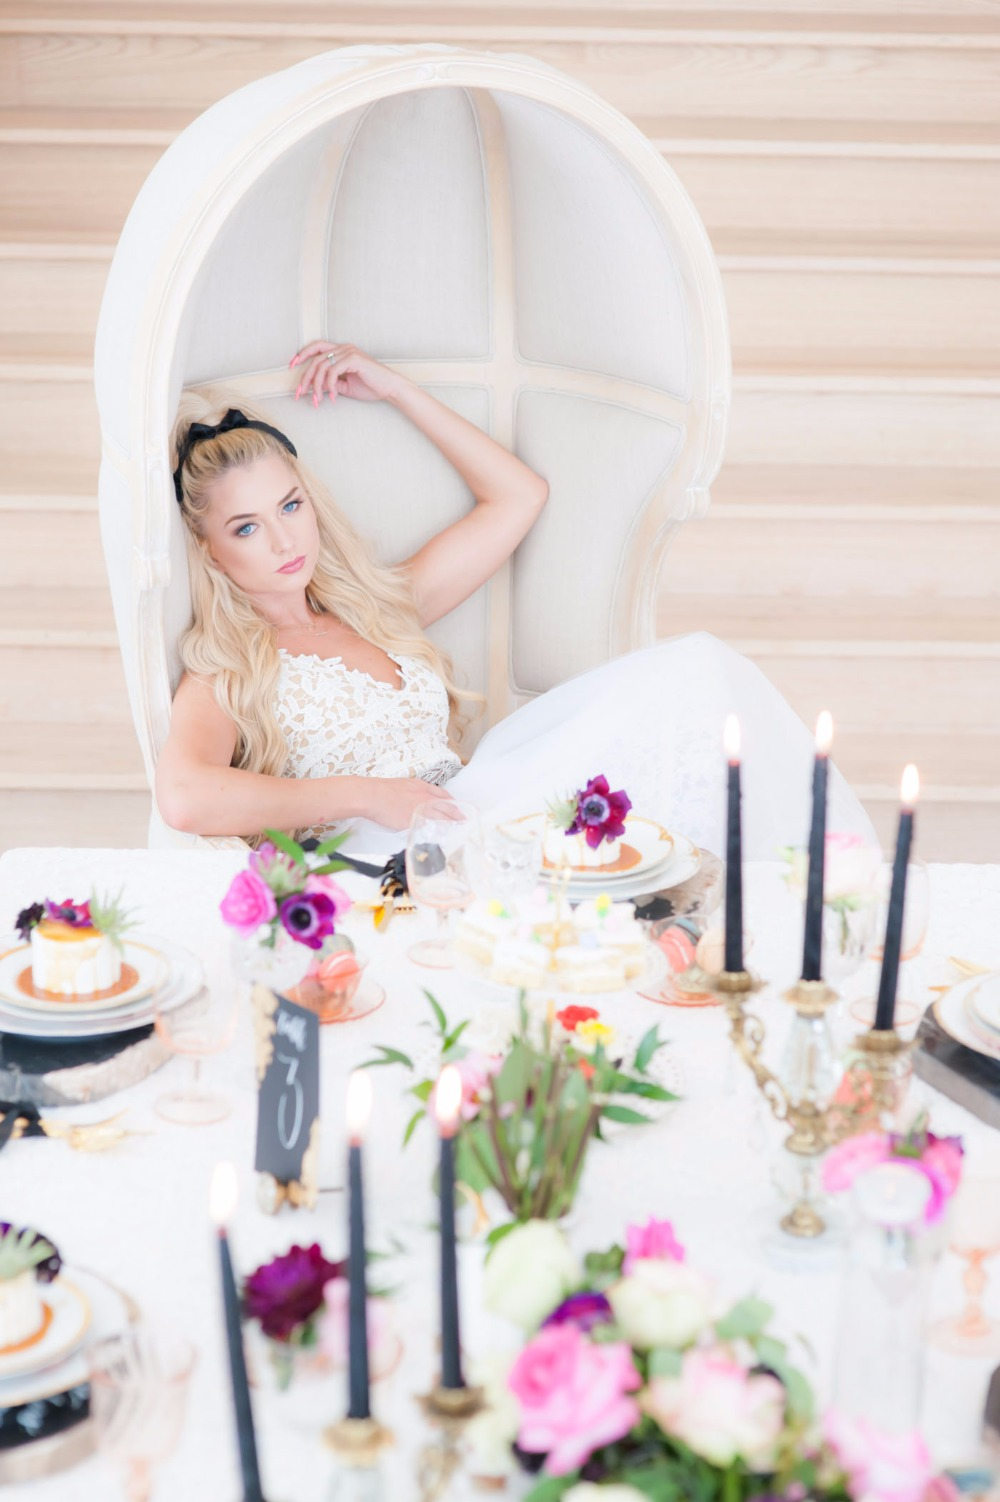 A Very Modern Alice in Wonderland Wedding Shoot with an Edgy Twist